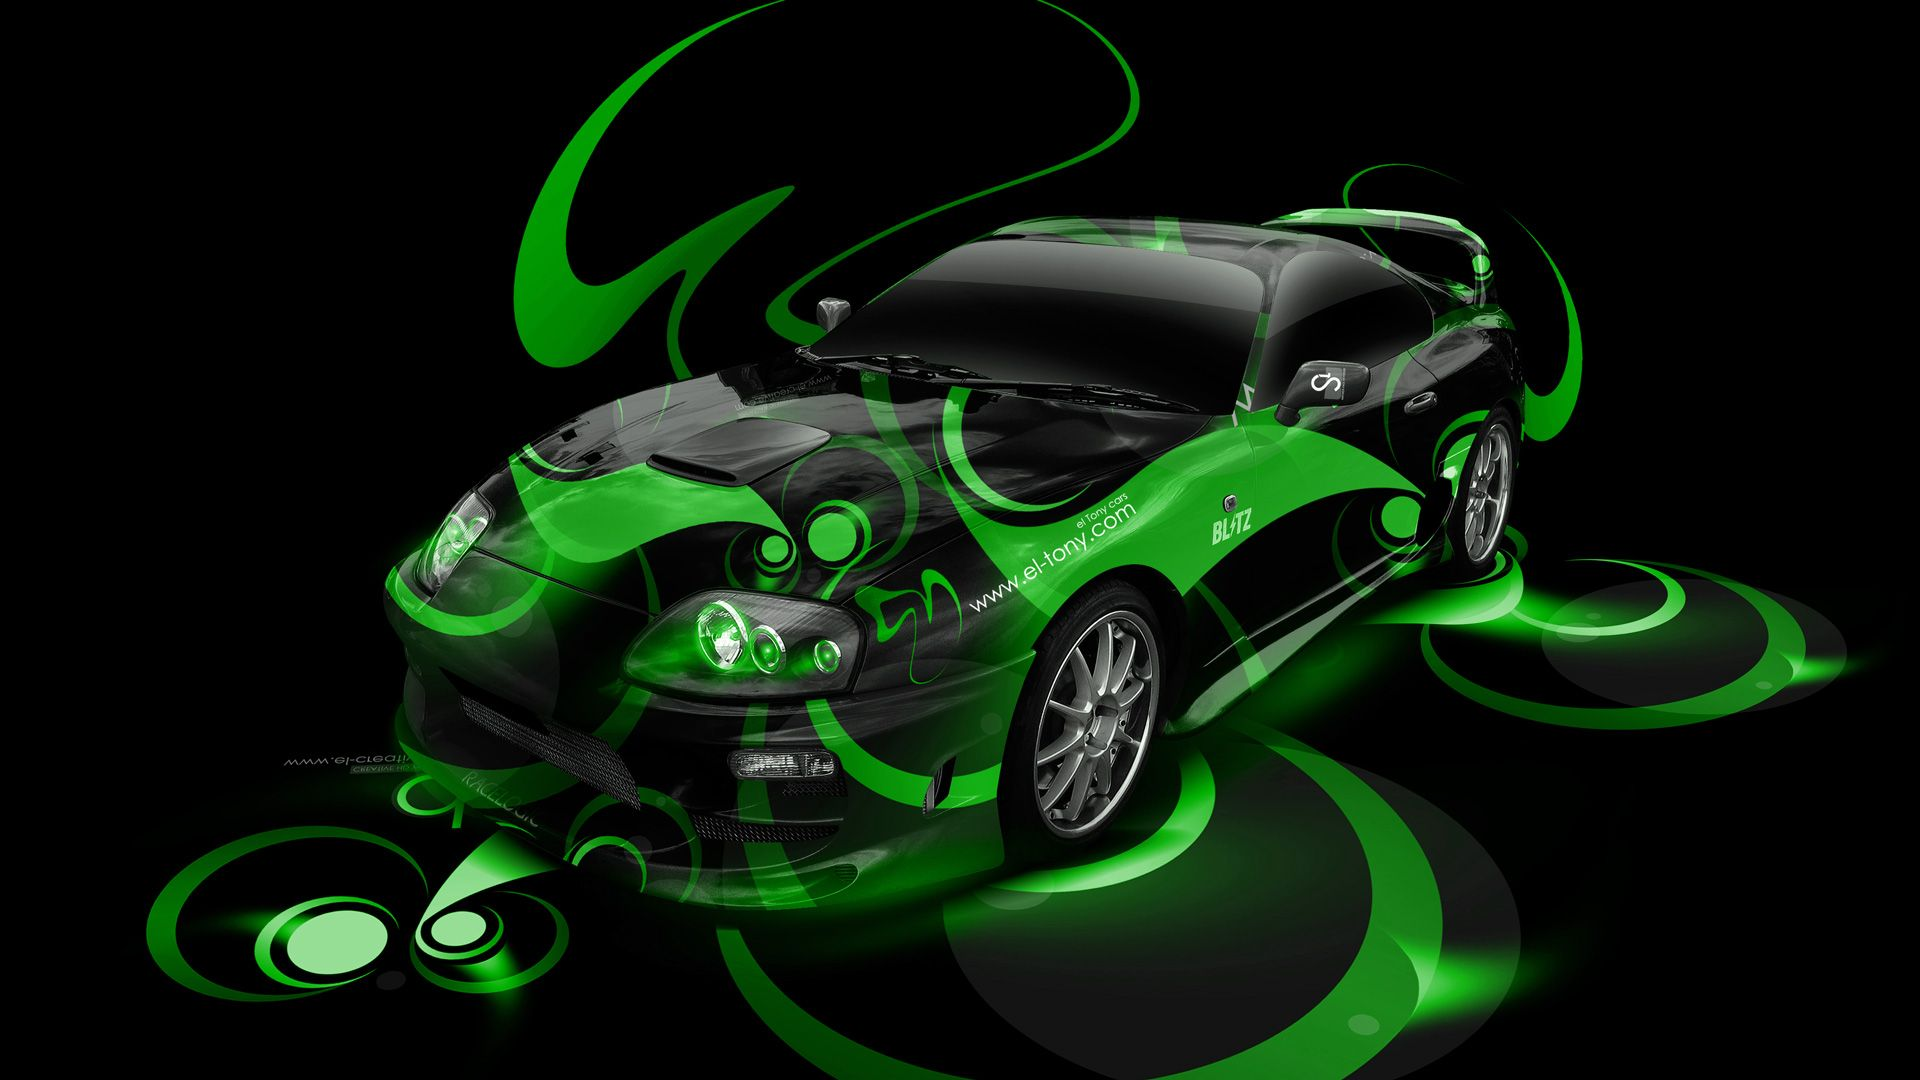 Merveilleux Toyota Supra JDM Super Abstract Car 2014 Green